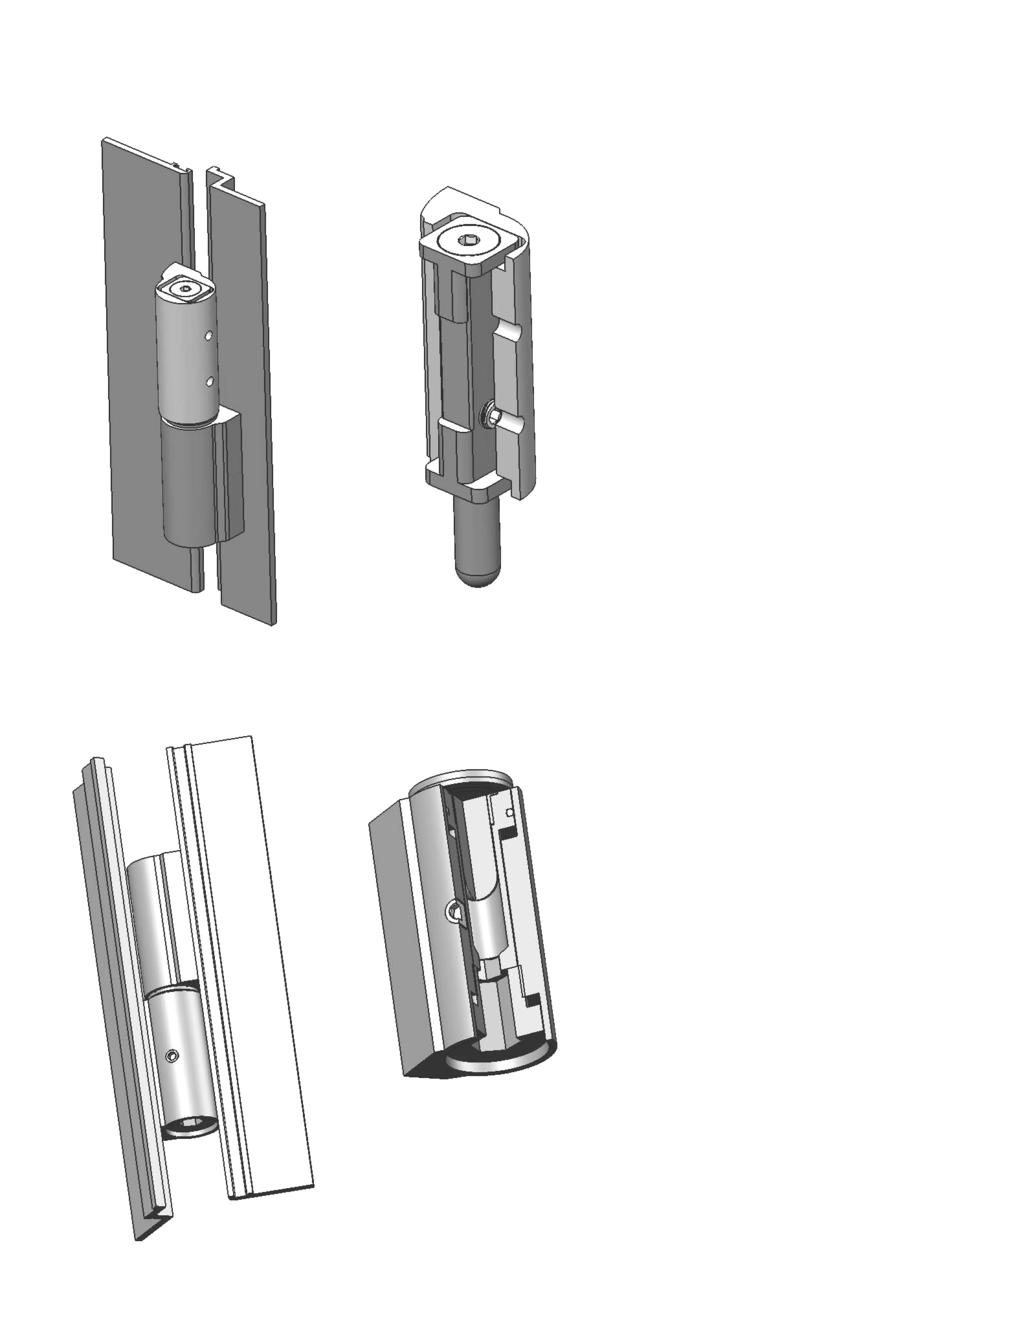 "OPTIONAL ADJUSTABLE HINGE LATERAL ADJUSTMENT 1. Use a 5/32"" Hex Wrench to loosen, but not remove, the Pin Screws on all hinges. 2. Using a 1/8"" Hex Wrench, adjust the Set Screw (+/-."